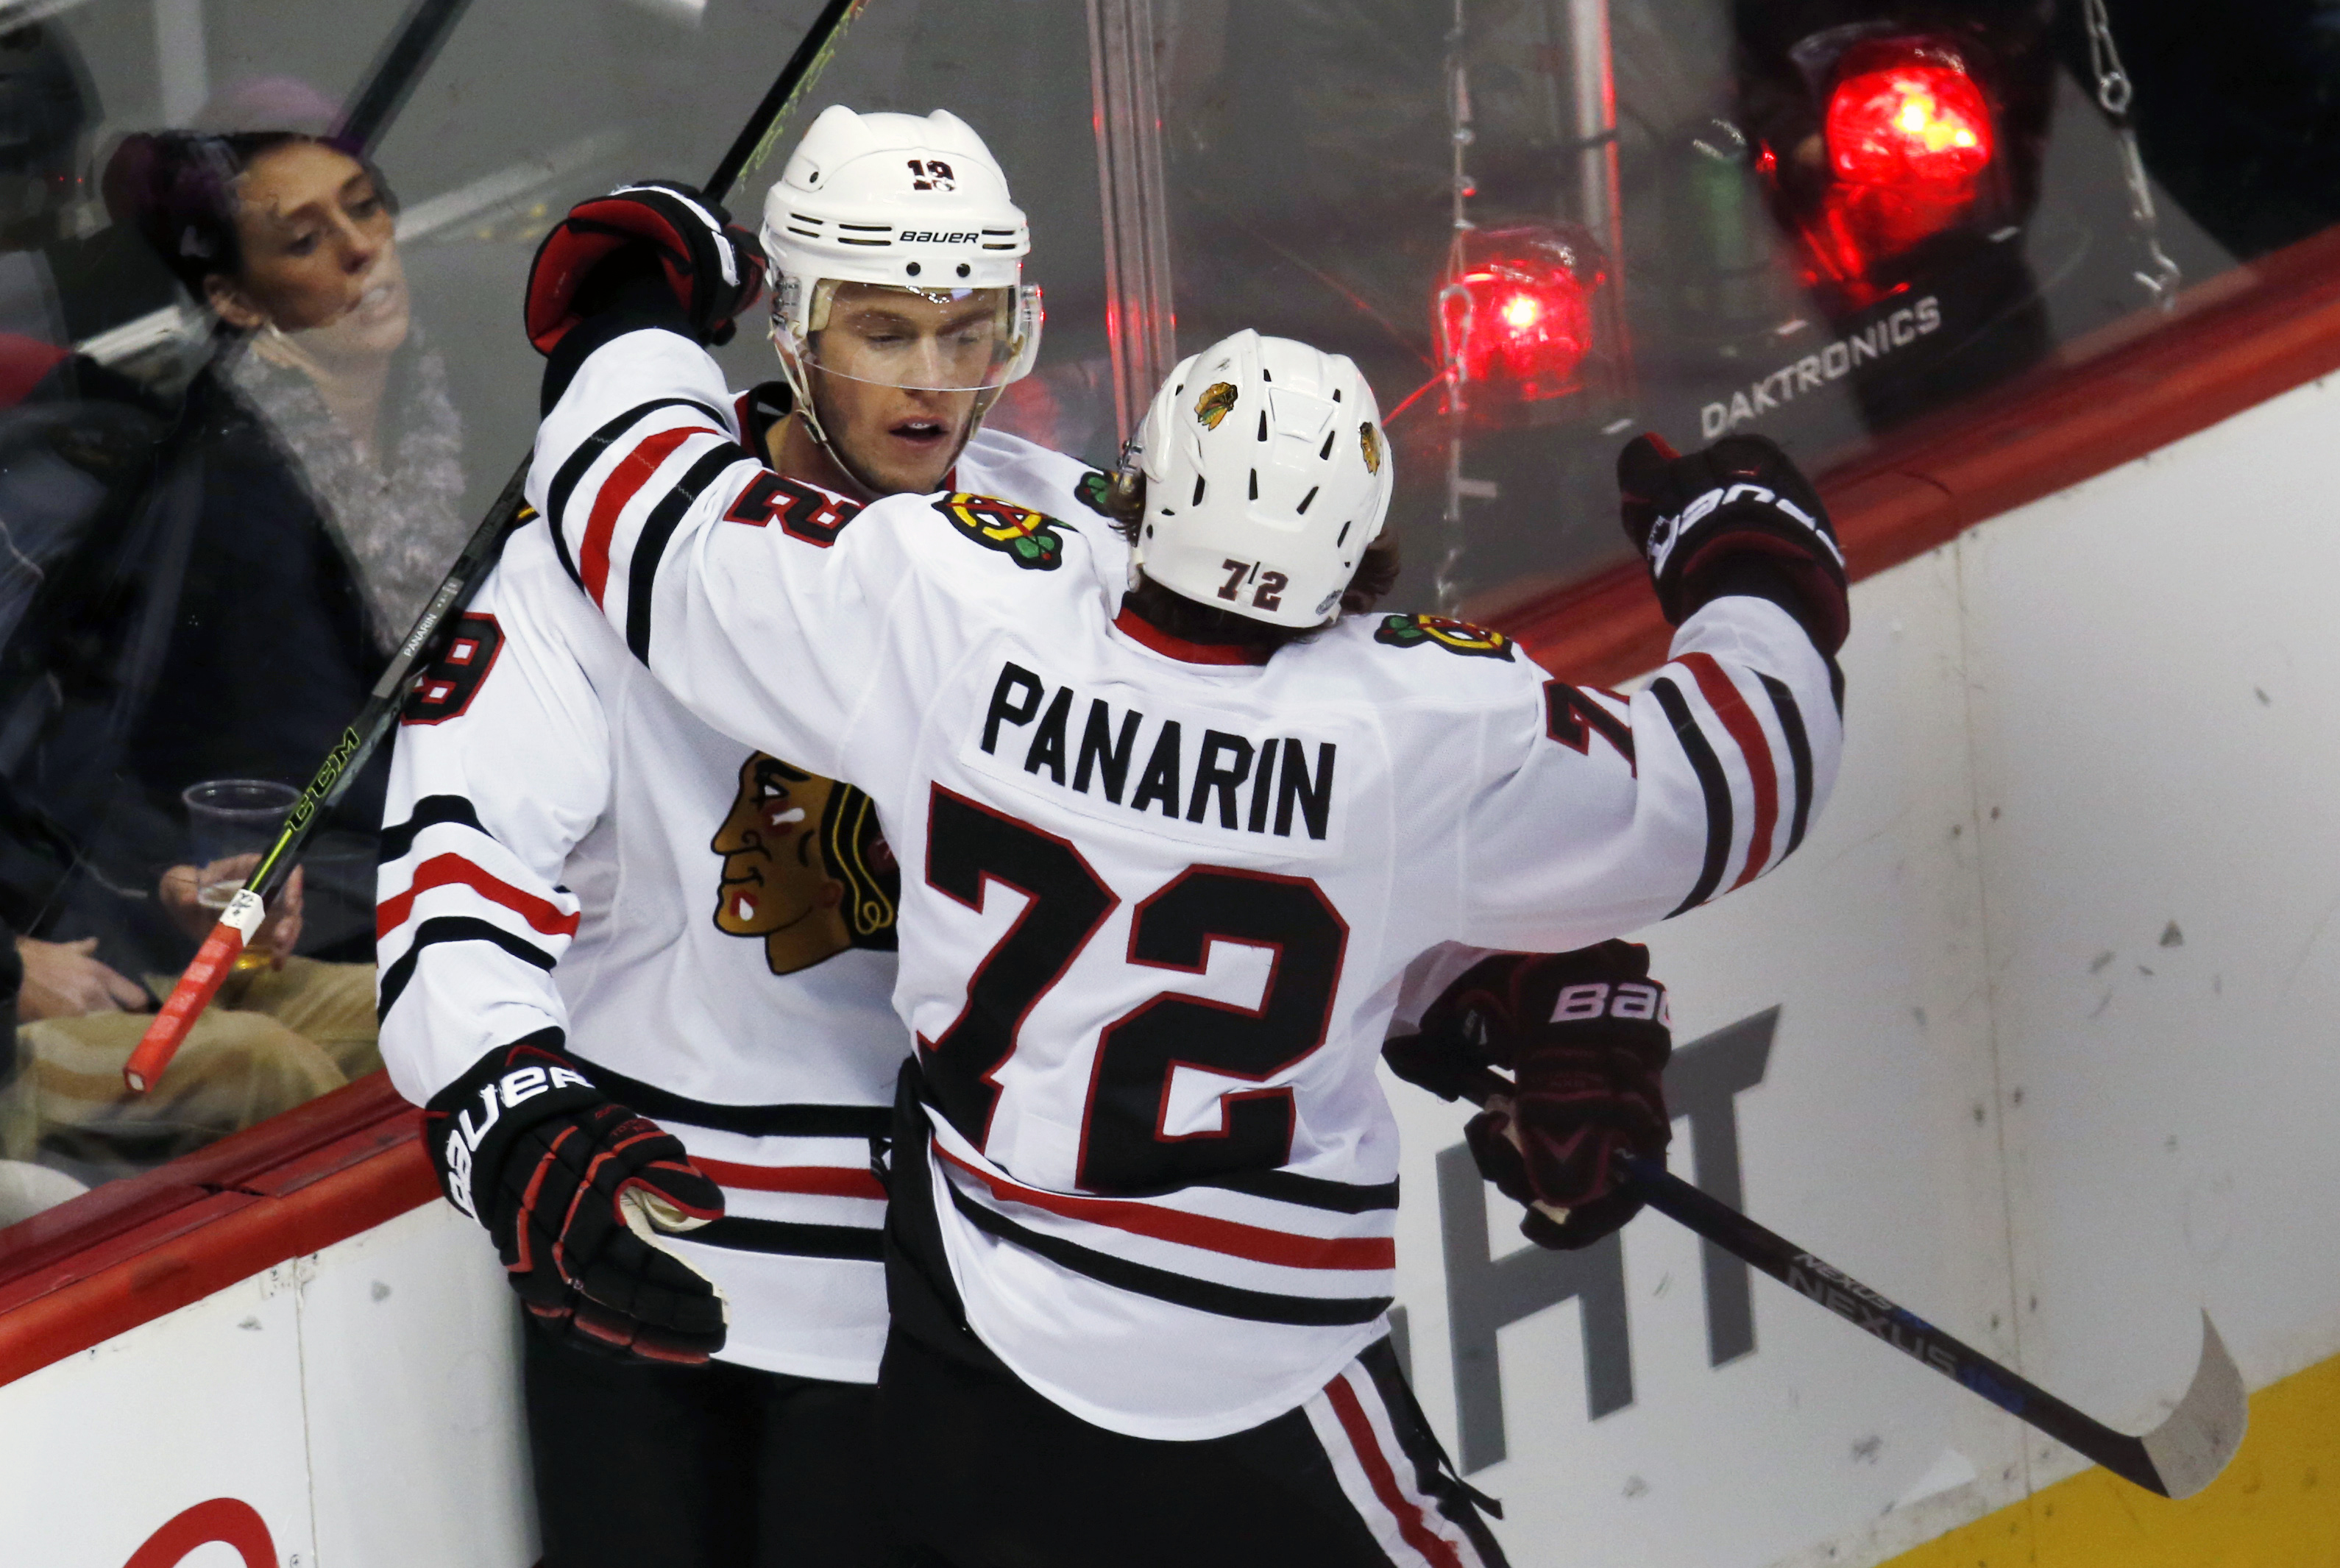 Chicago Blackhawks center Jonathan Toews, left, celebrates after scoring the winning goal with left wing Artemi Panarin, of Russia, against the Colorado Avalanche in overtime of an NHL hockey game Thursday, Dec. 31, 2015, in Denver. Chicago won 4-3. (AP P